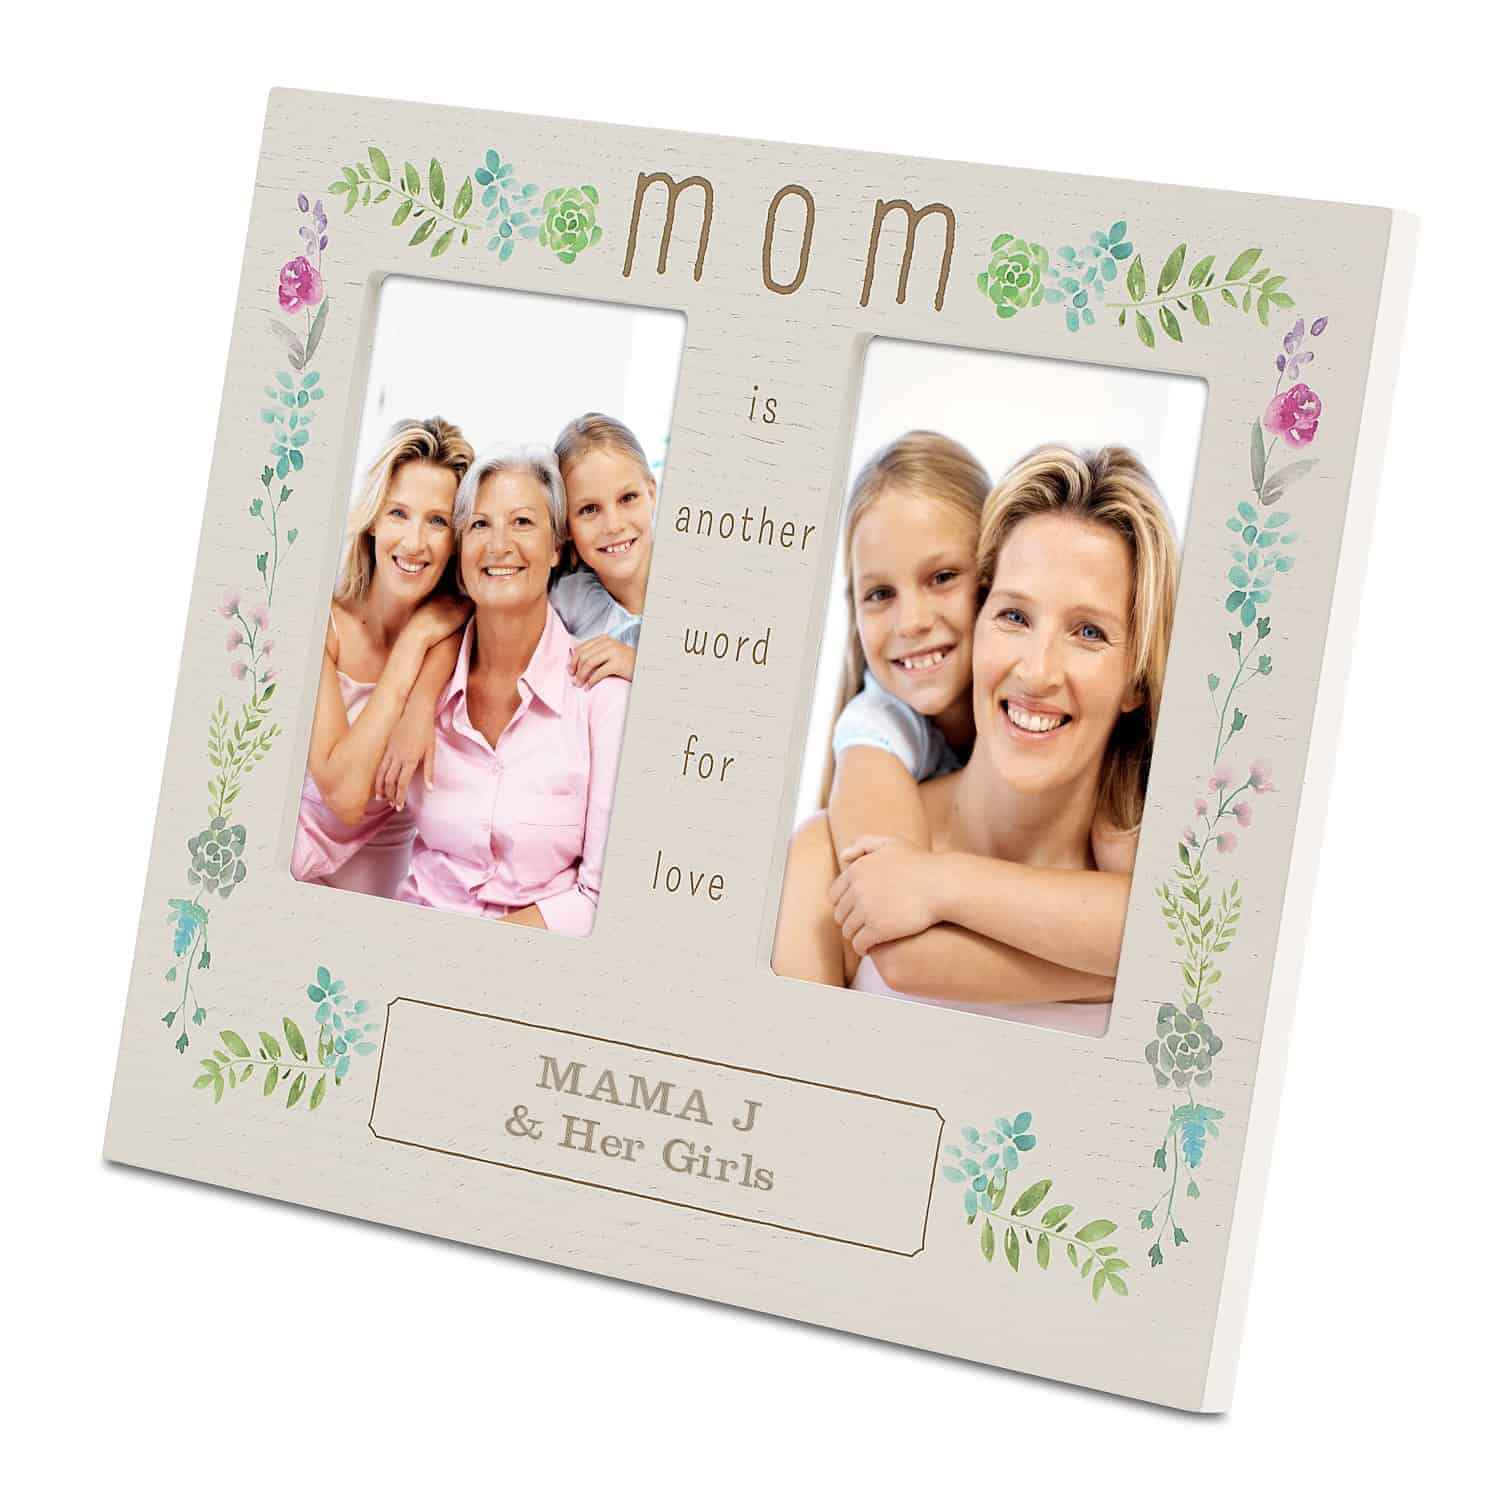 Beautiful Personalized Gifts for Mother\'s Day | The Domestic Life ...